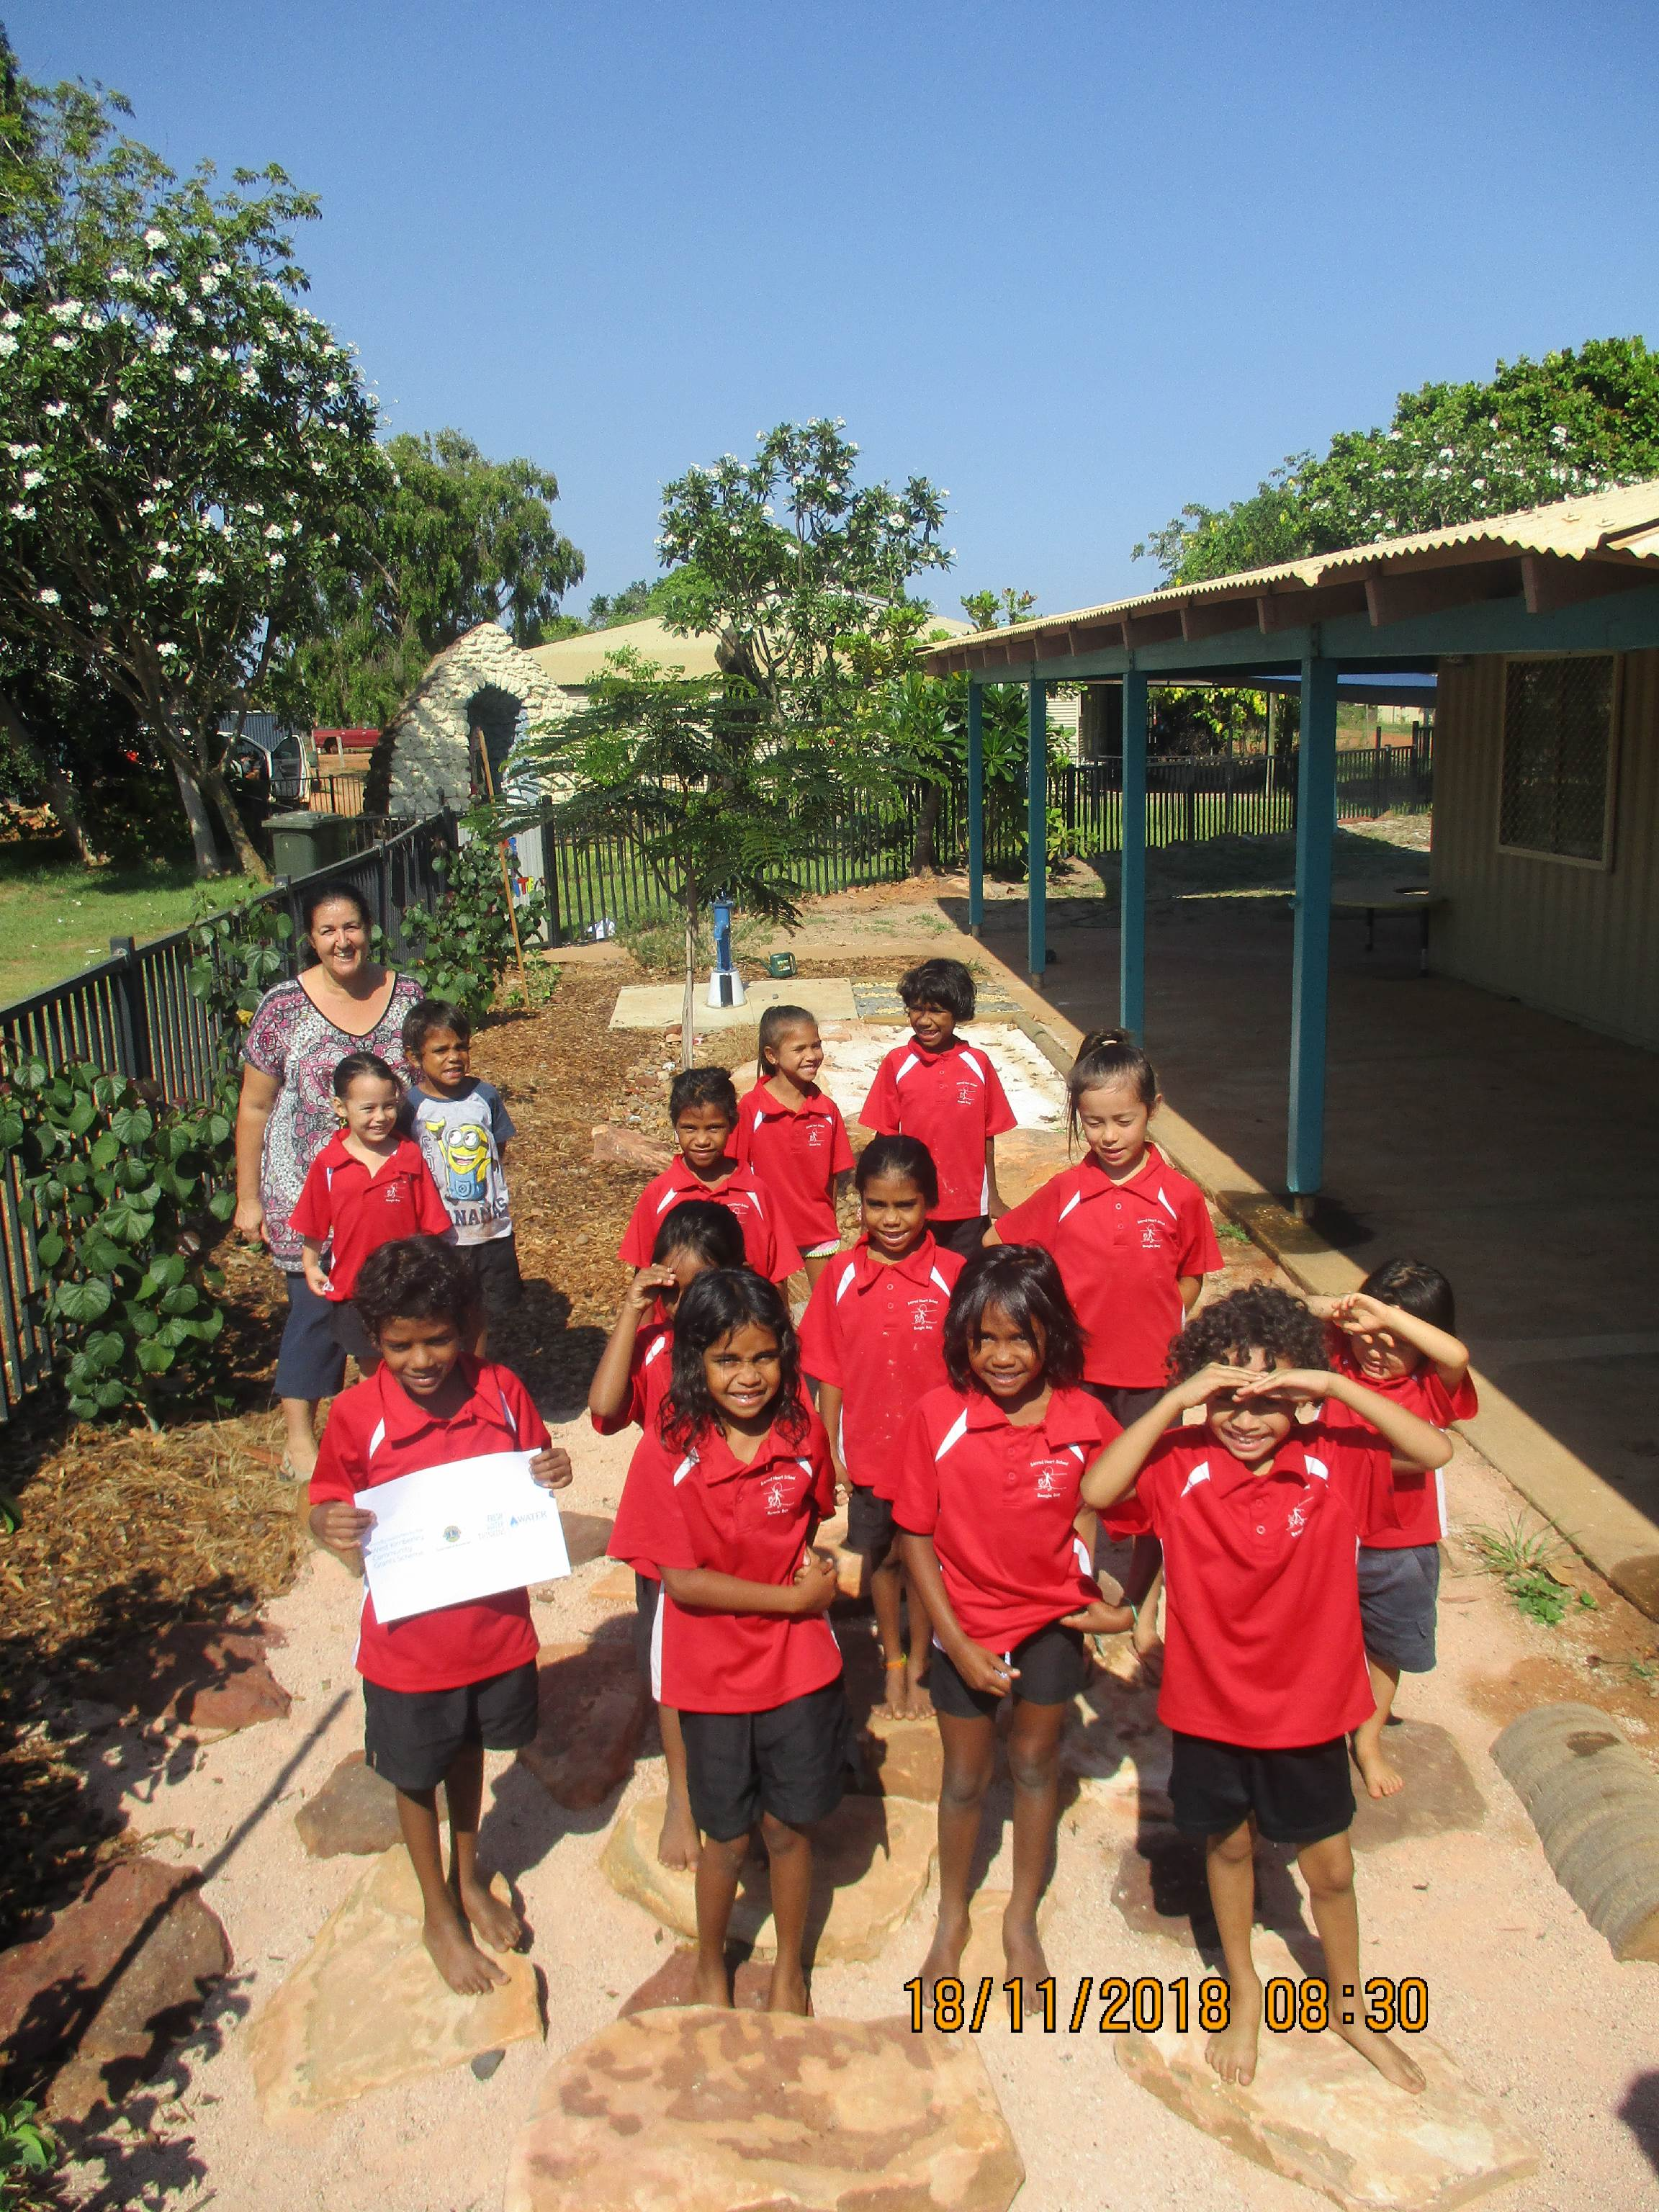 Students from Beagle Bay Primary School